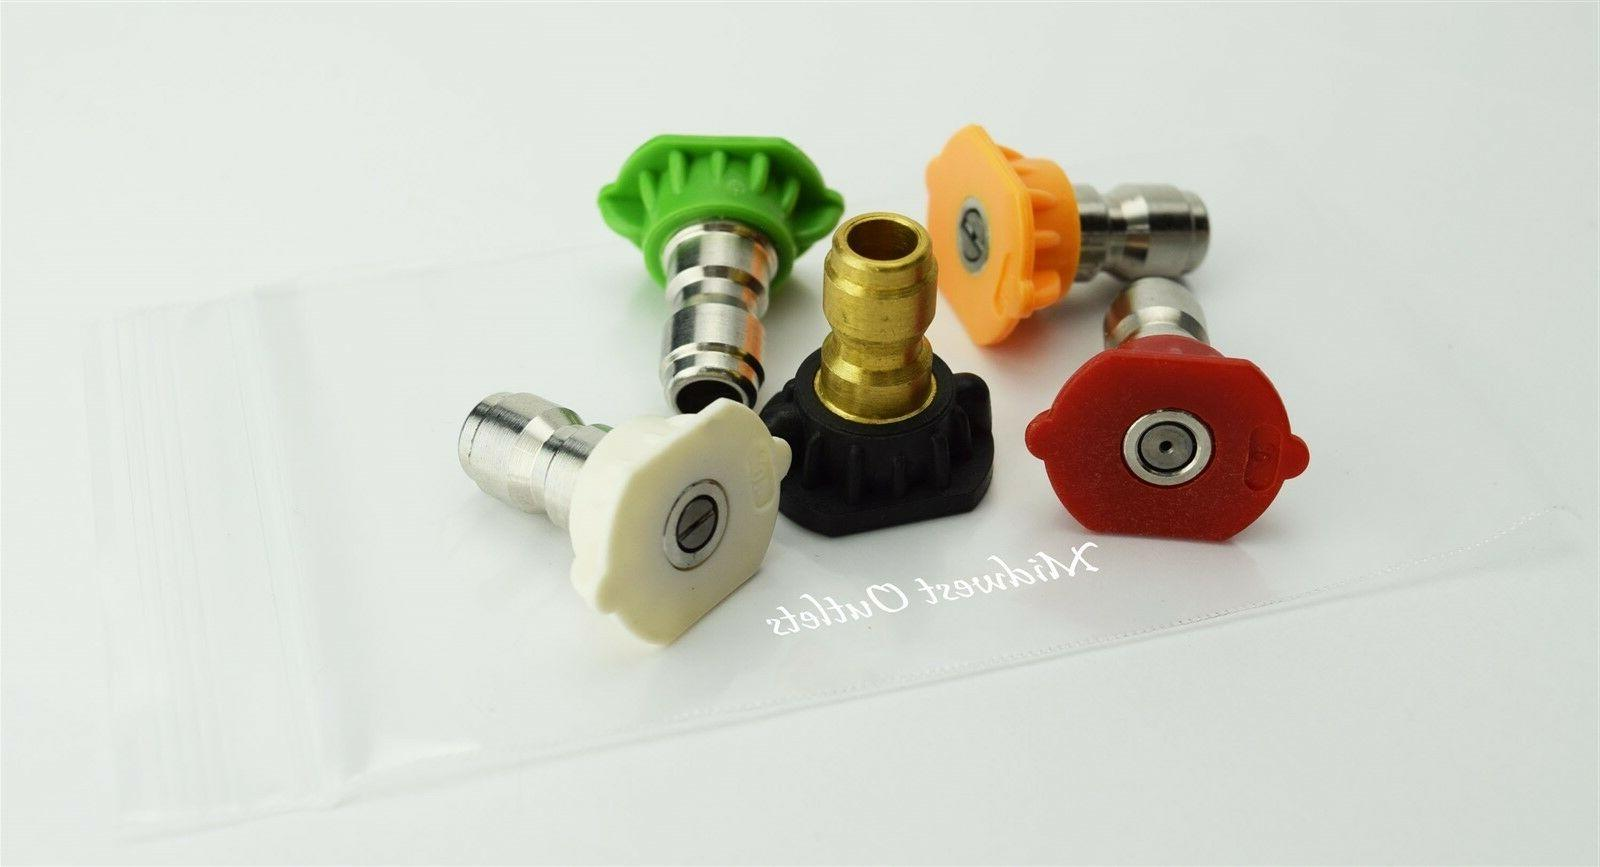 5 Washer Quick Gun Spray Nozzle